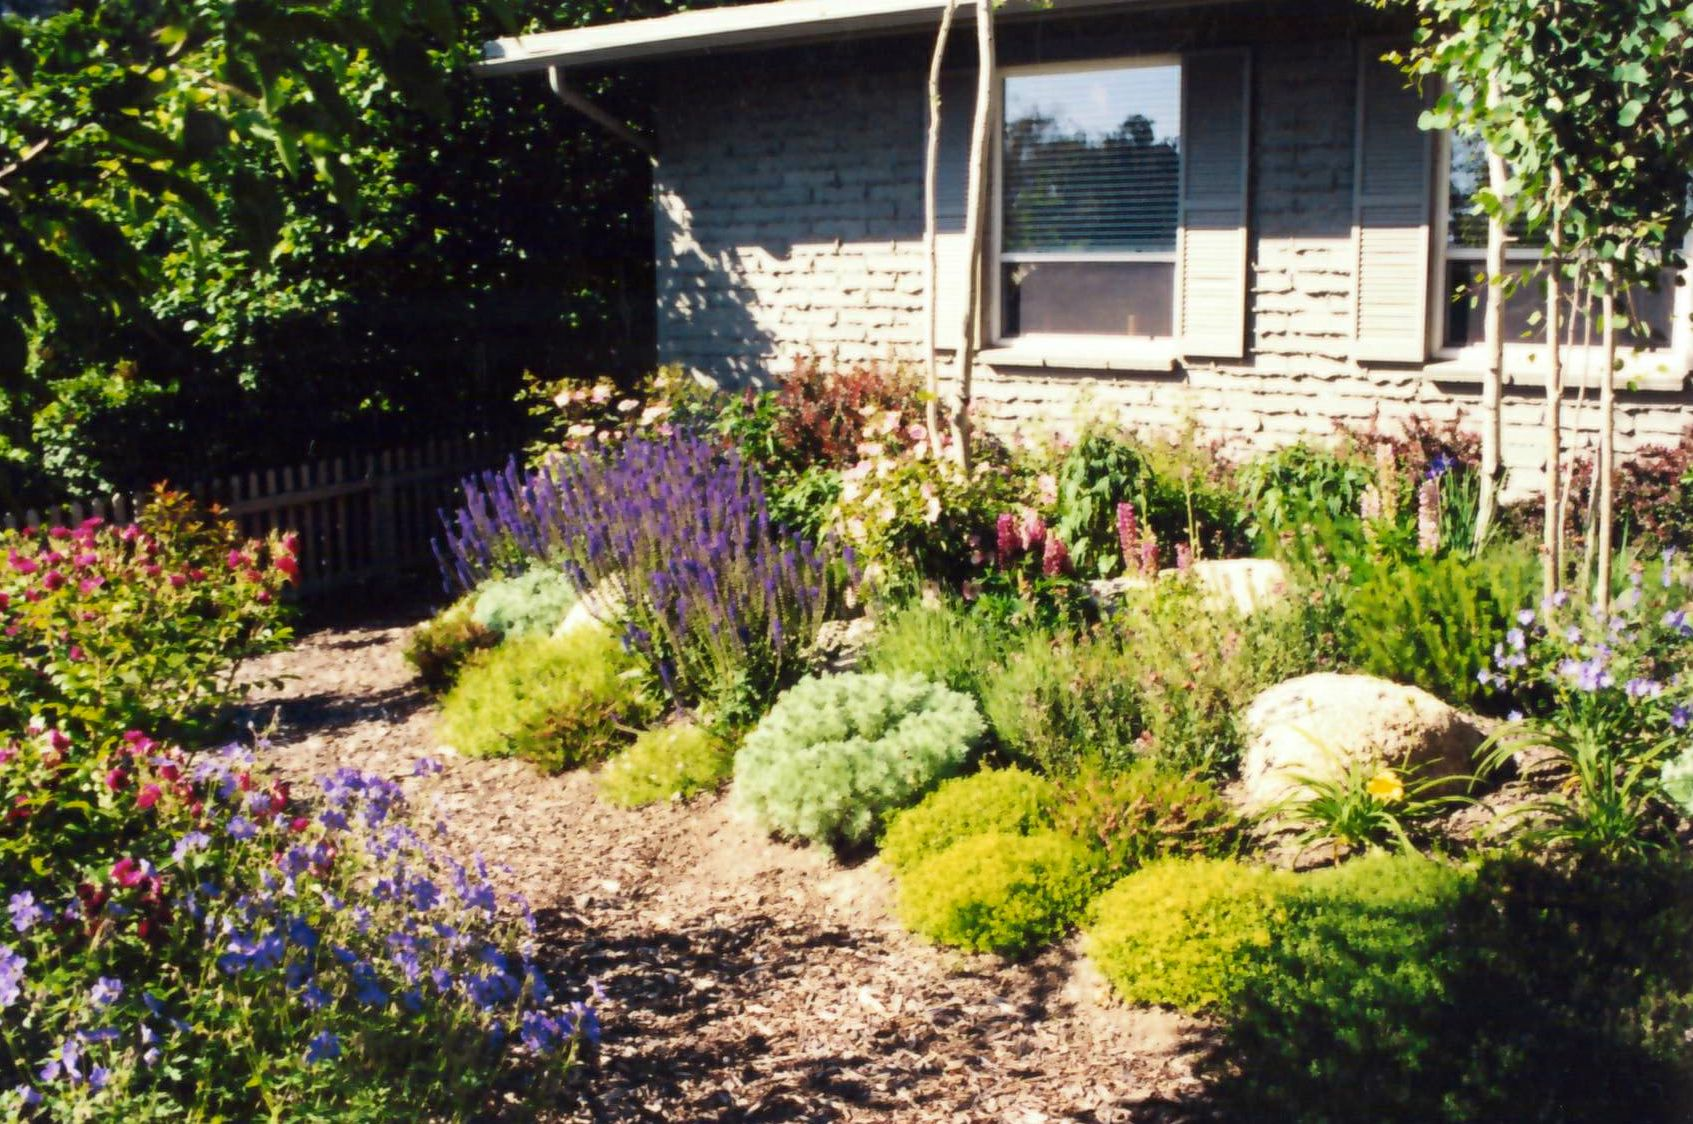 Cottage Style Garden Ideas colonial style cottage garden Brenda Broughton Garden Design Simple Cottage Style Low Water Use Front Garden Landscape Design